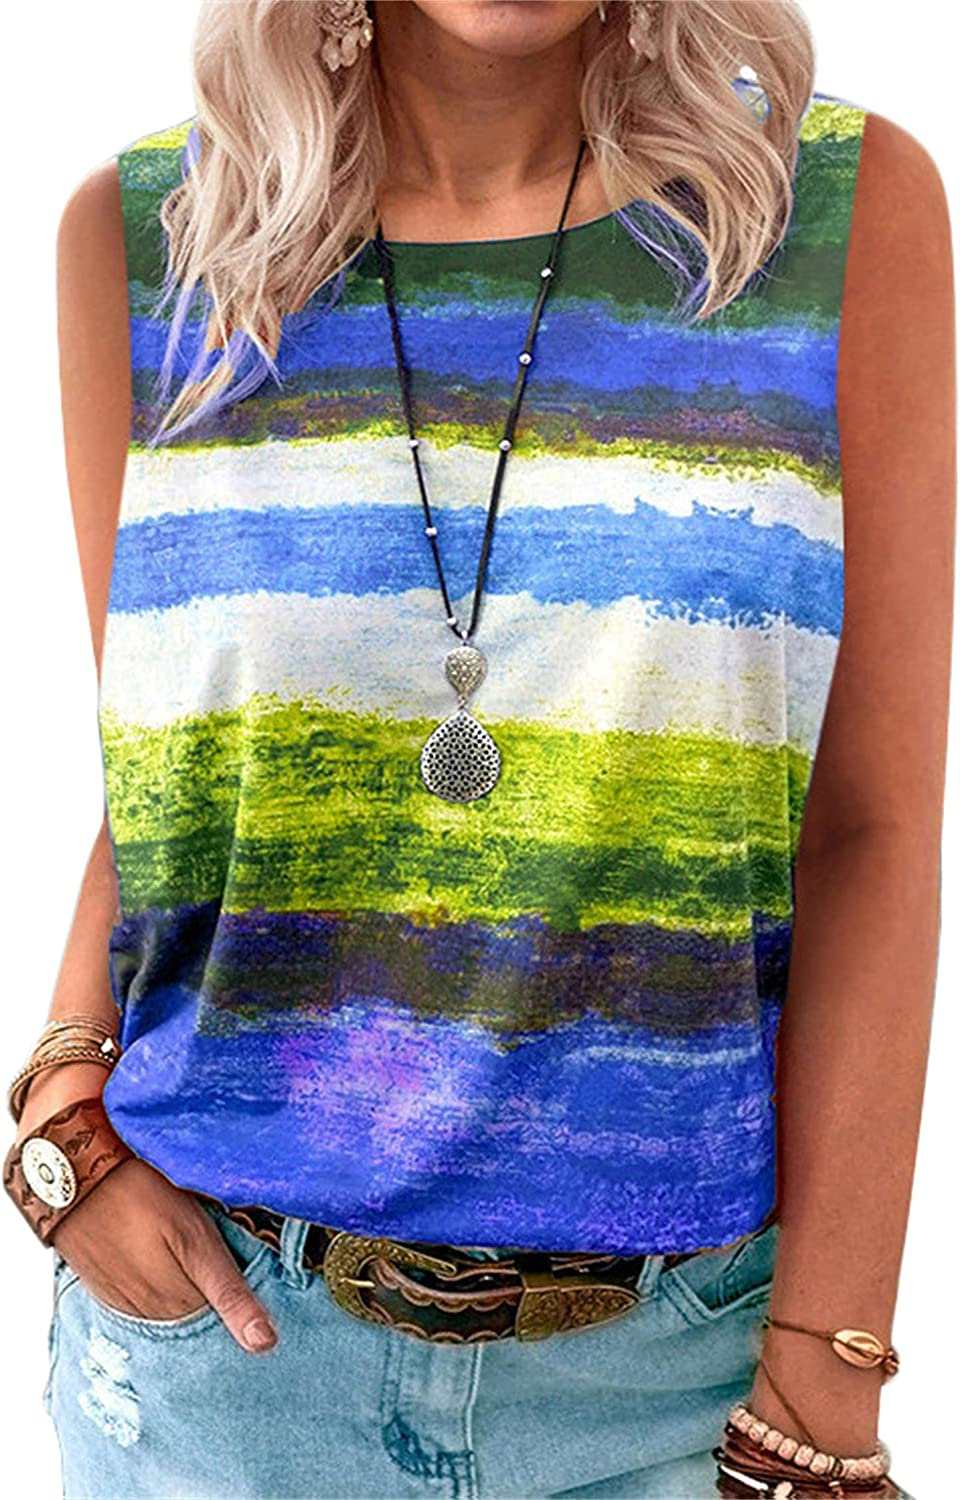 Andongnywell Women's Gradient Contrast Tie Dye Printed Tank Tops Loose Casual Sleeveless Shirts Blouse T Shirts